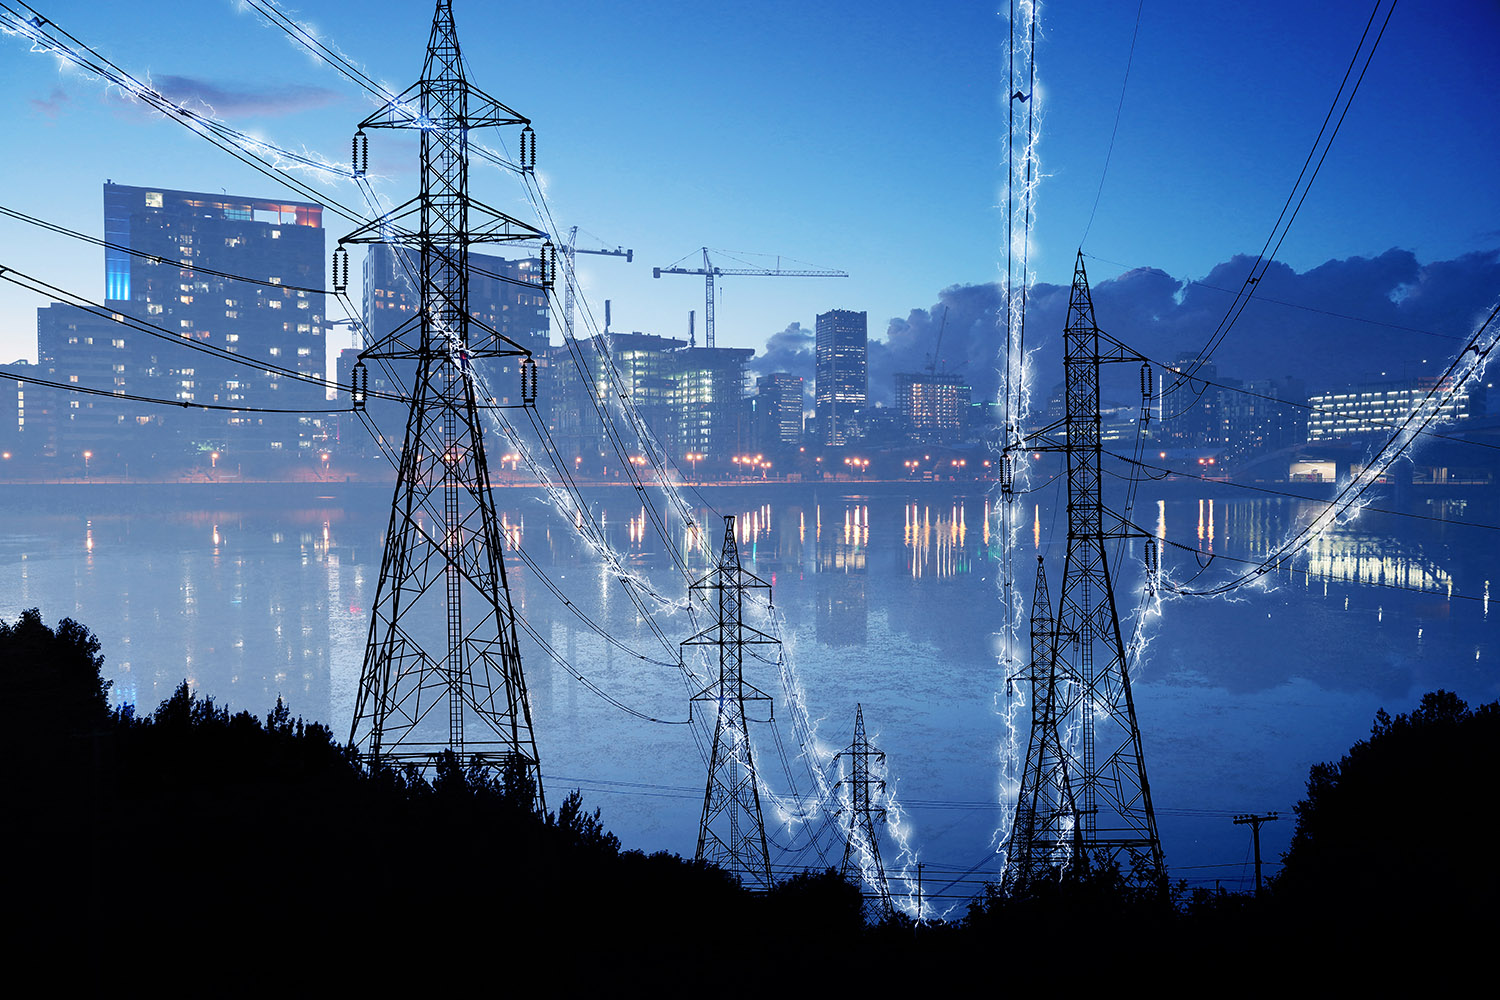 Urban Electrification Concept in Blue - Stock Photography